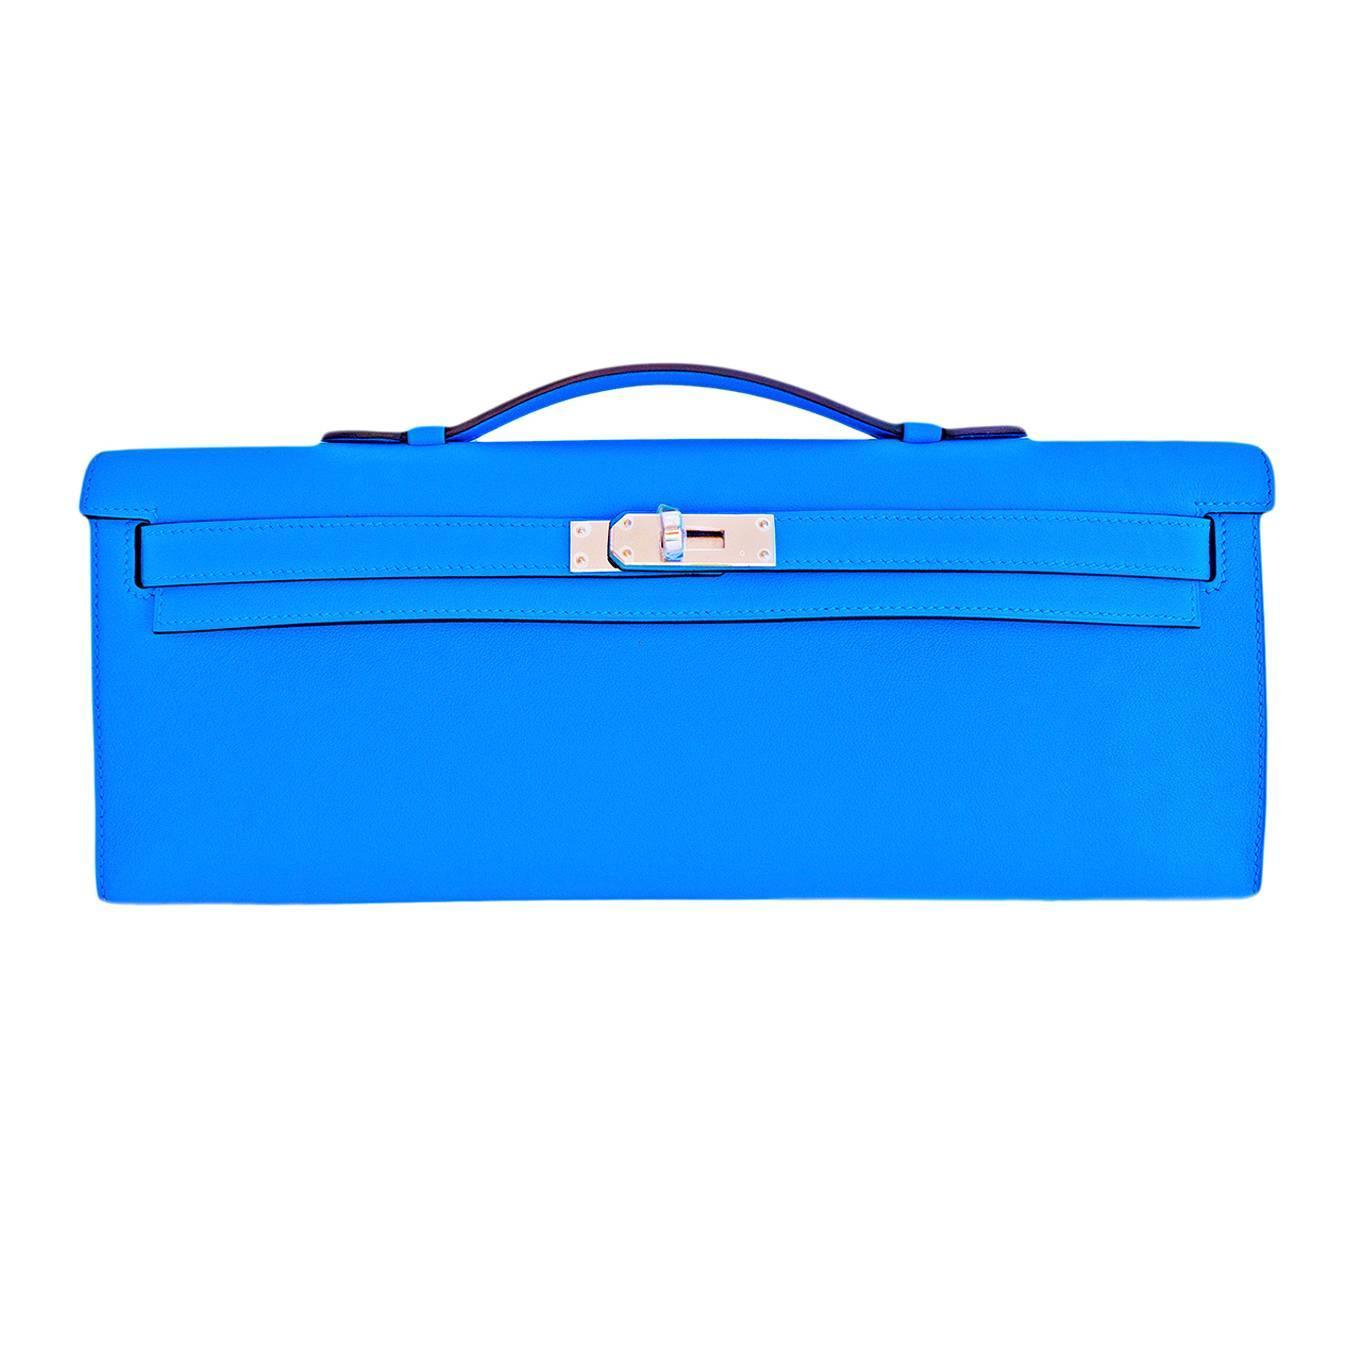 hermes kelly cut pochette- blue paradise swift leather phw